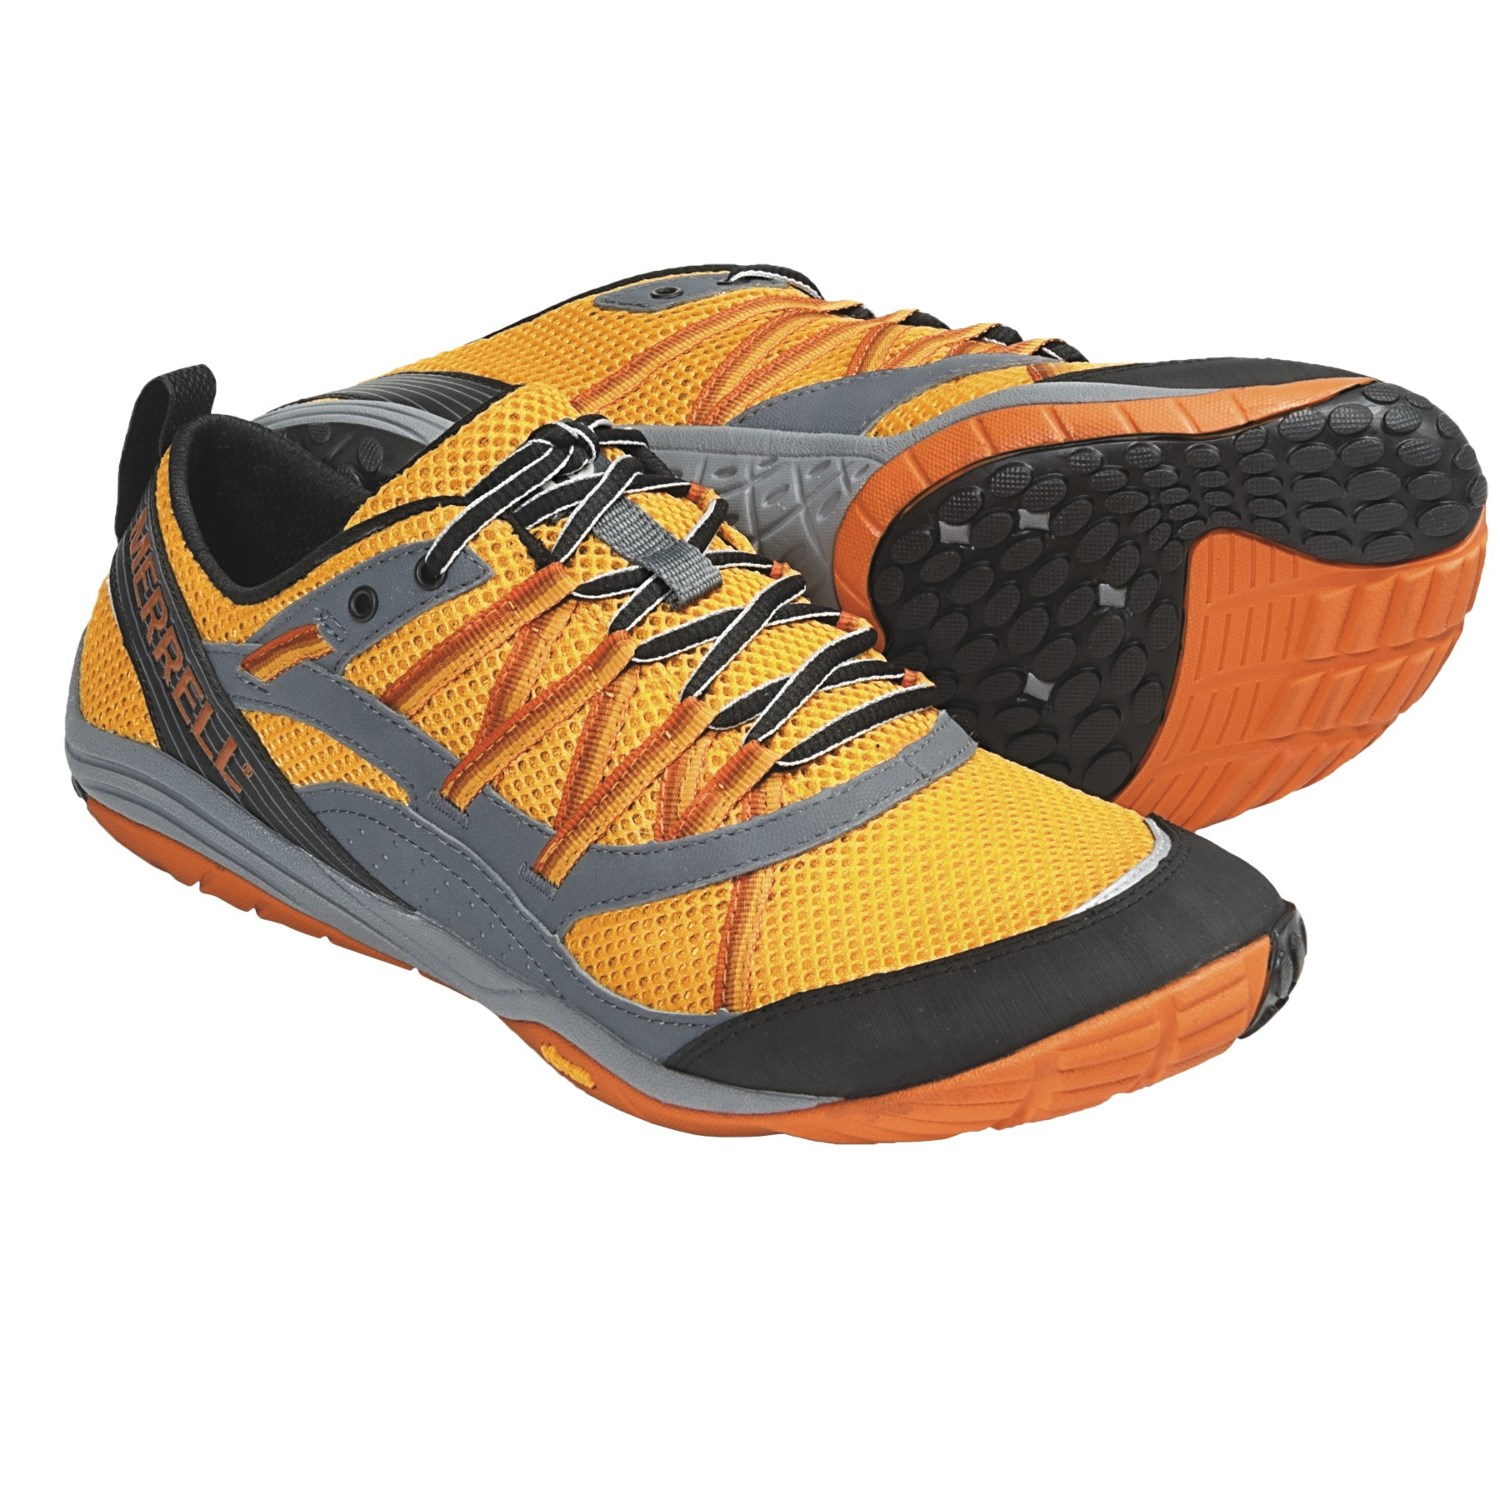 Barefoot Running Shoes Cleatamce